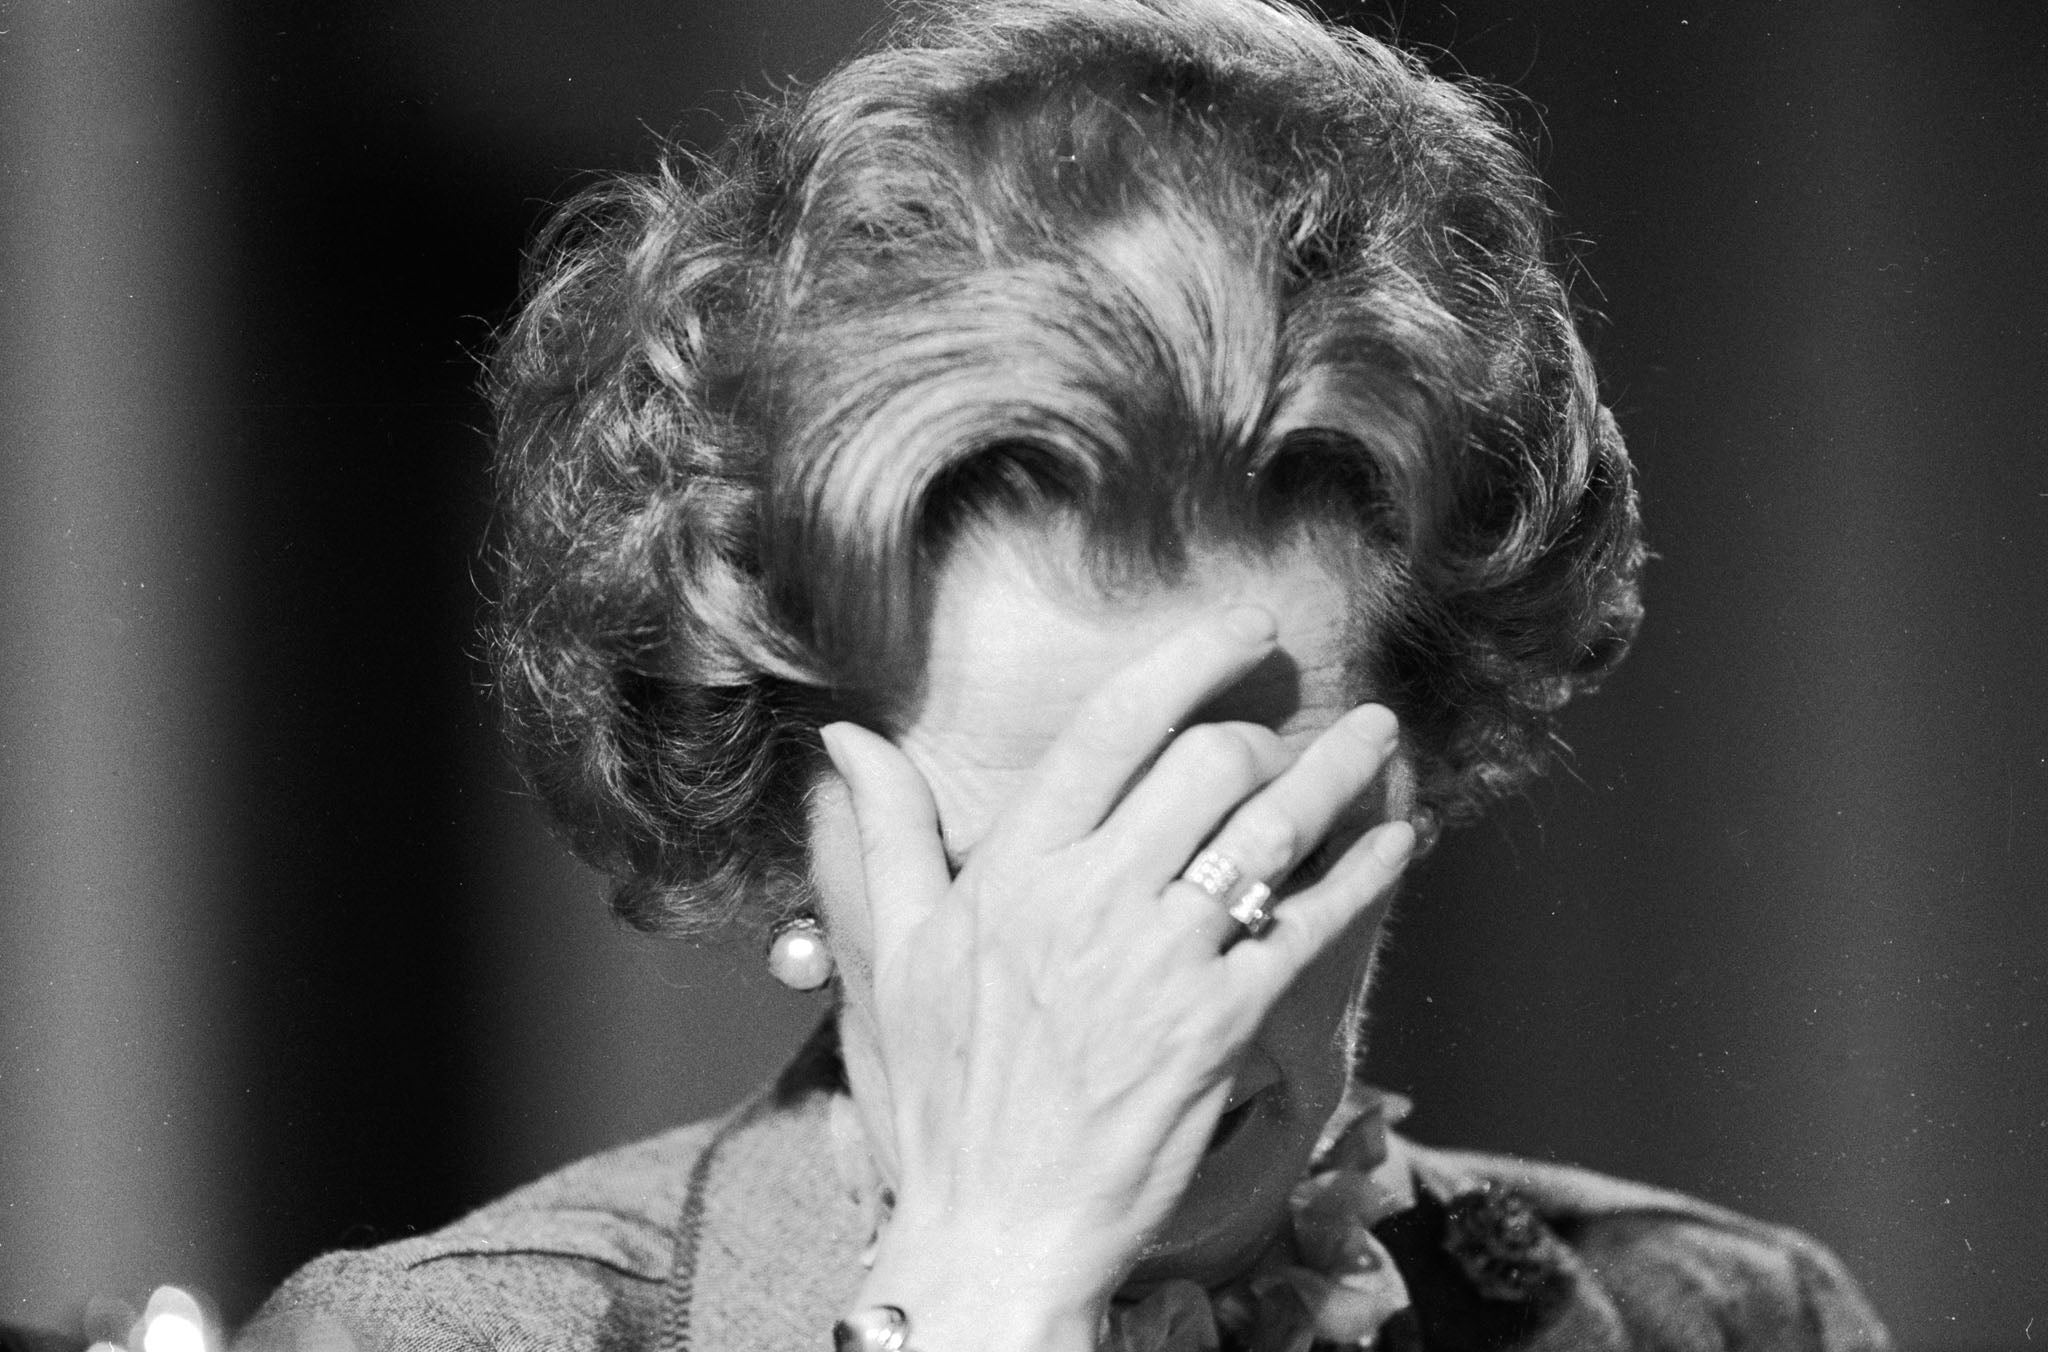 The Iron Barnet Margaret Thatcher Had 118 Hair Appointments In Just 12 Months The Independent The Independent